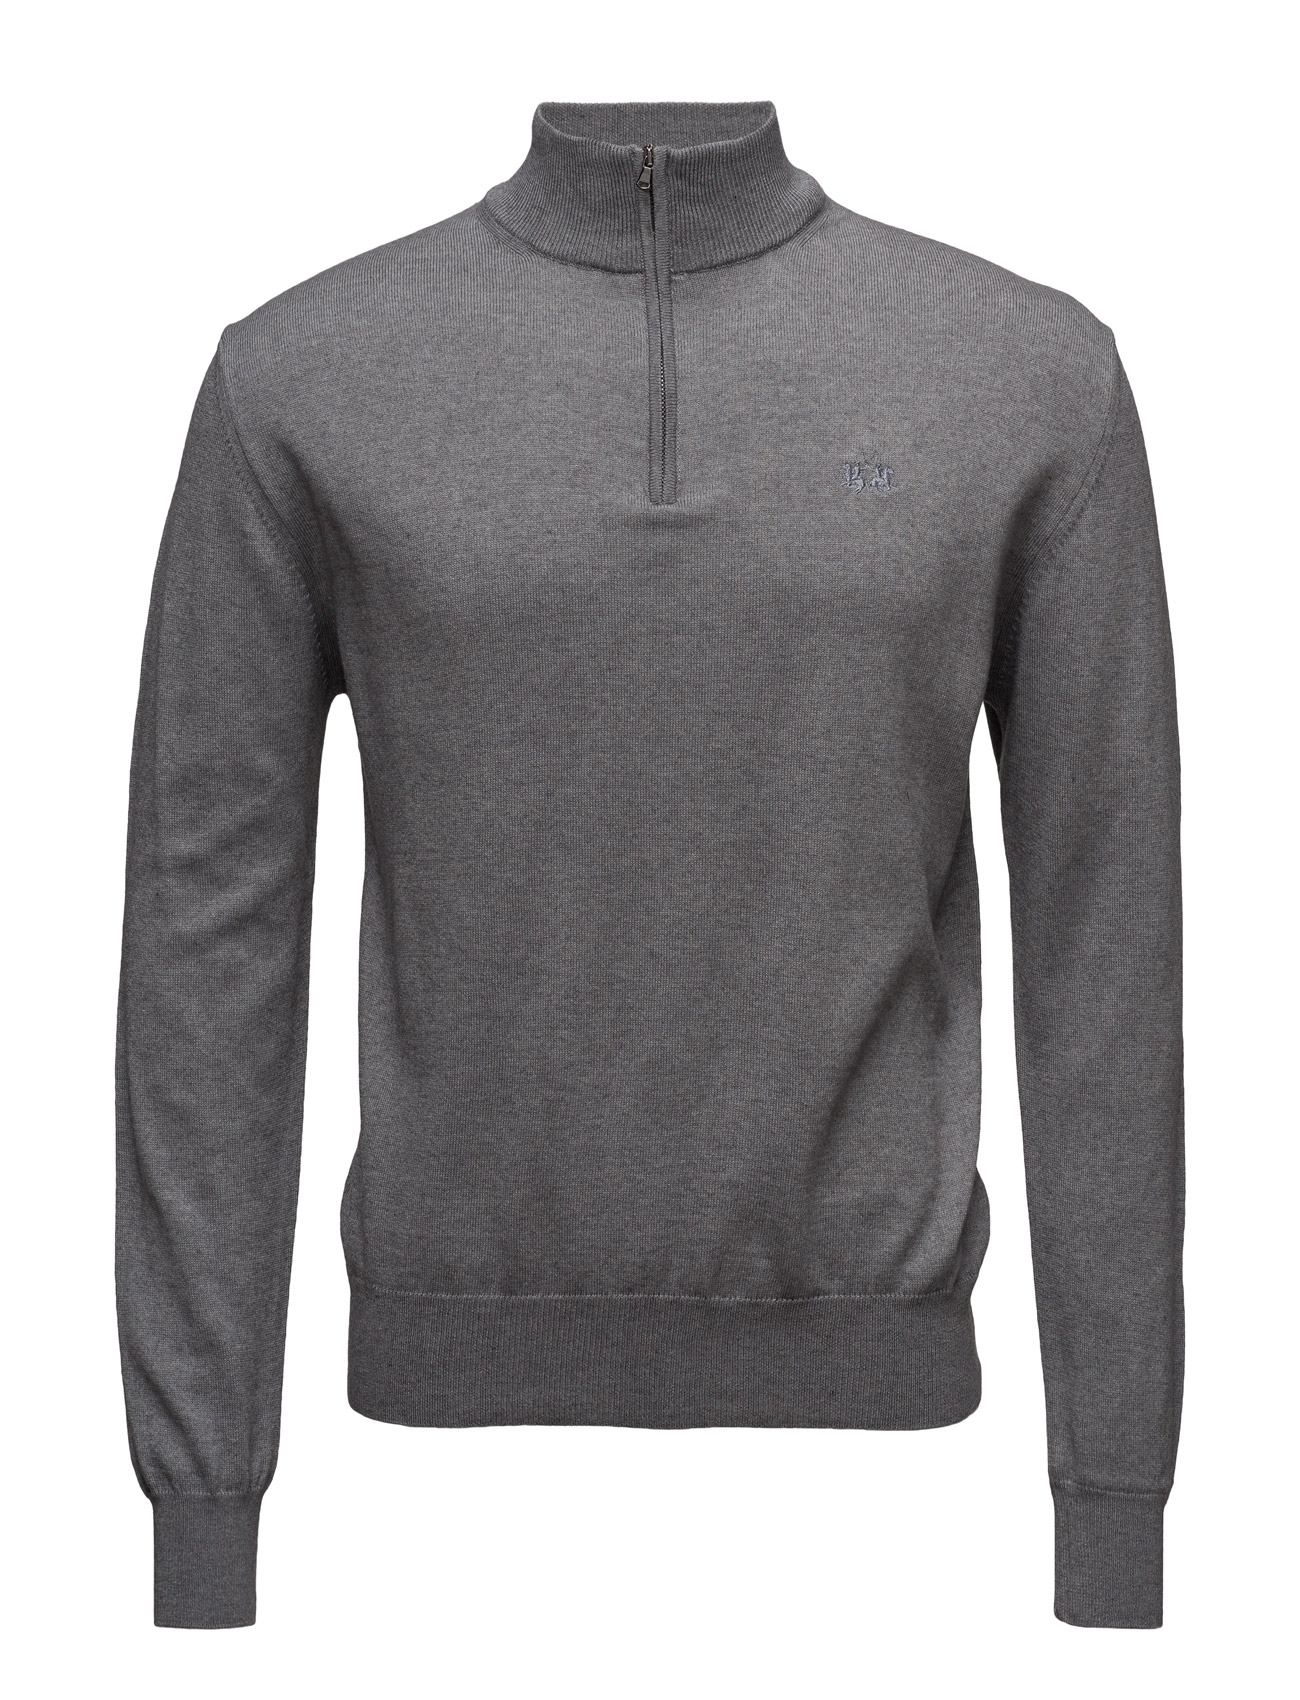 la martina – La martina-man half zip sweat.  wool/co g på boozt.com dk